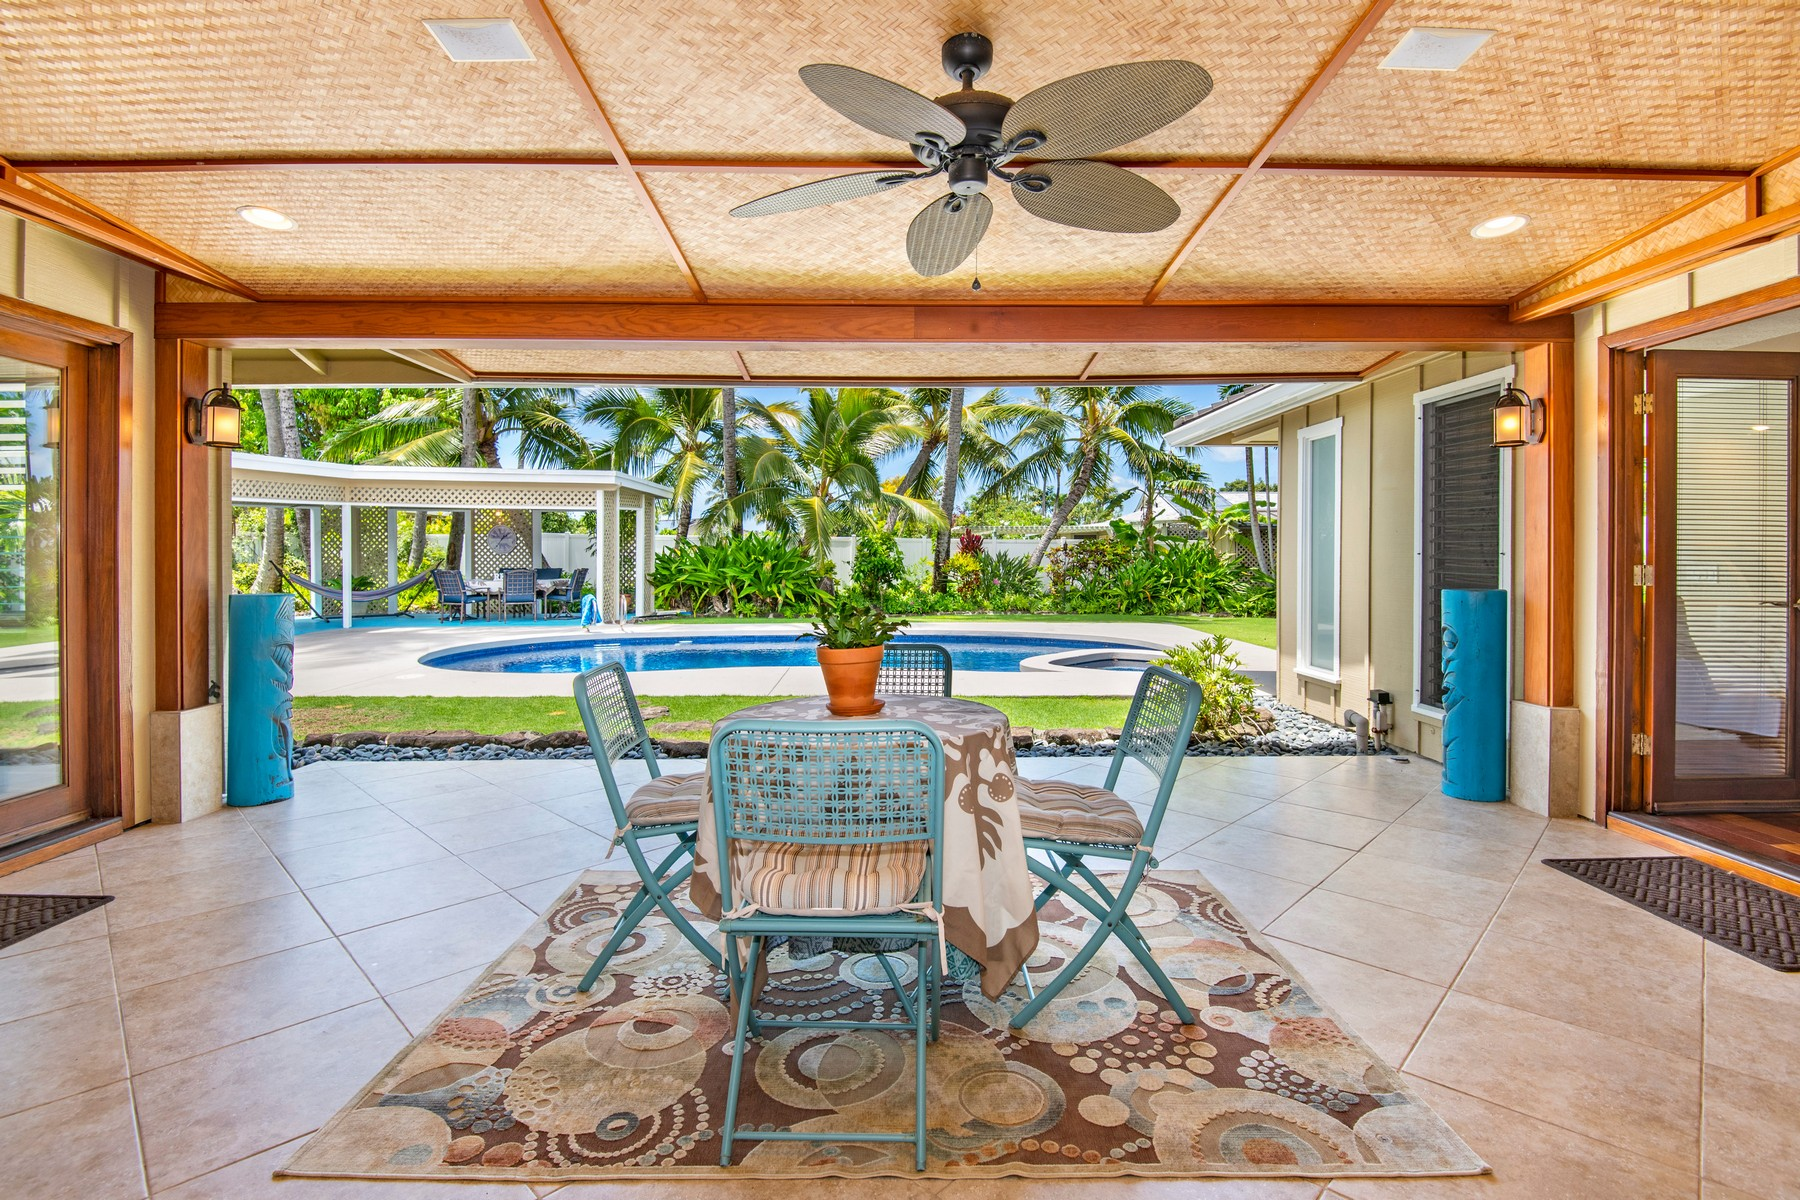 Single Family Homes for Active at Tropical Paradise 150 S. Kainalu Dr Kailua, Hawaii 96734 United States